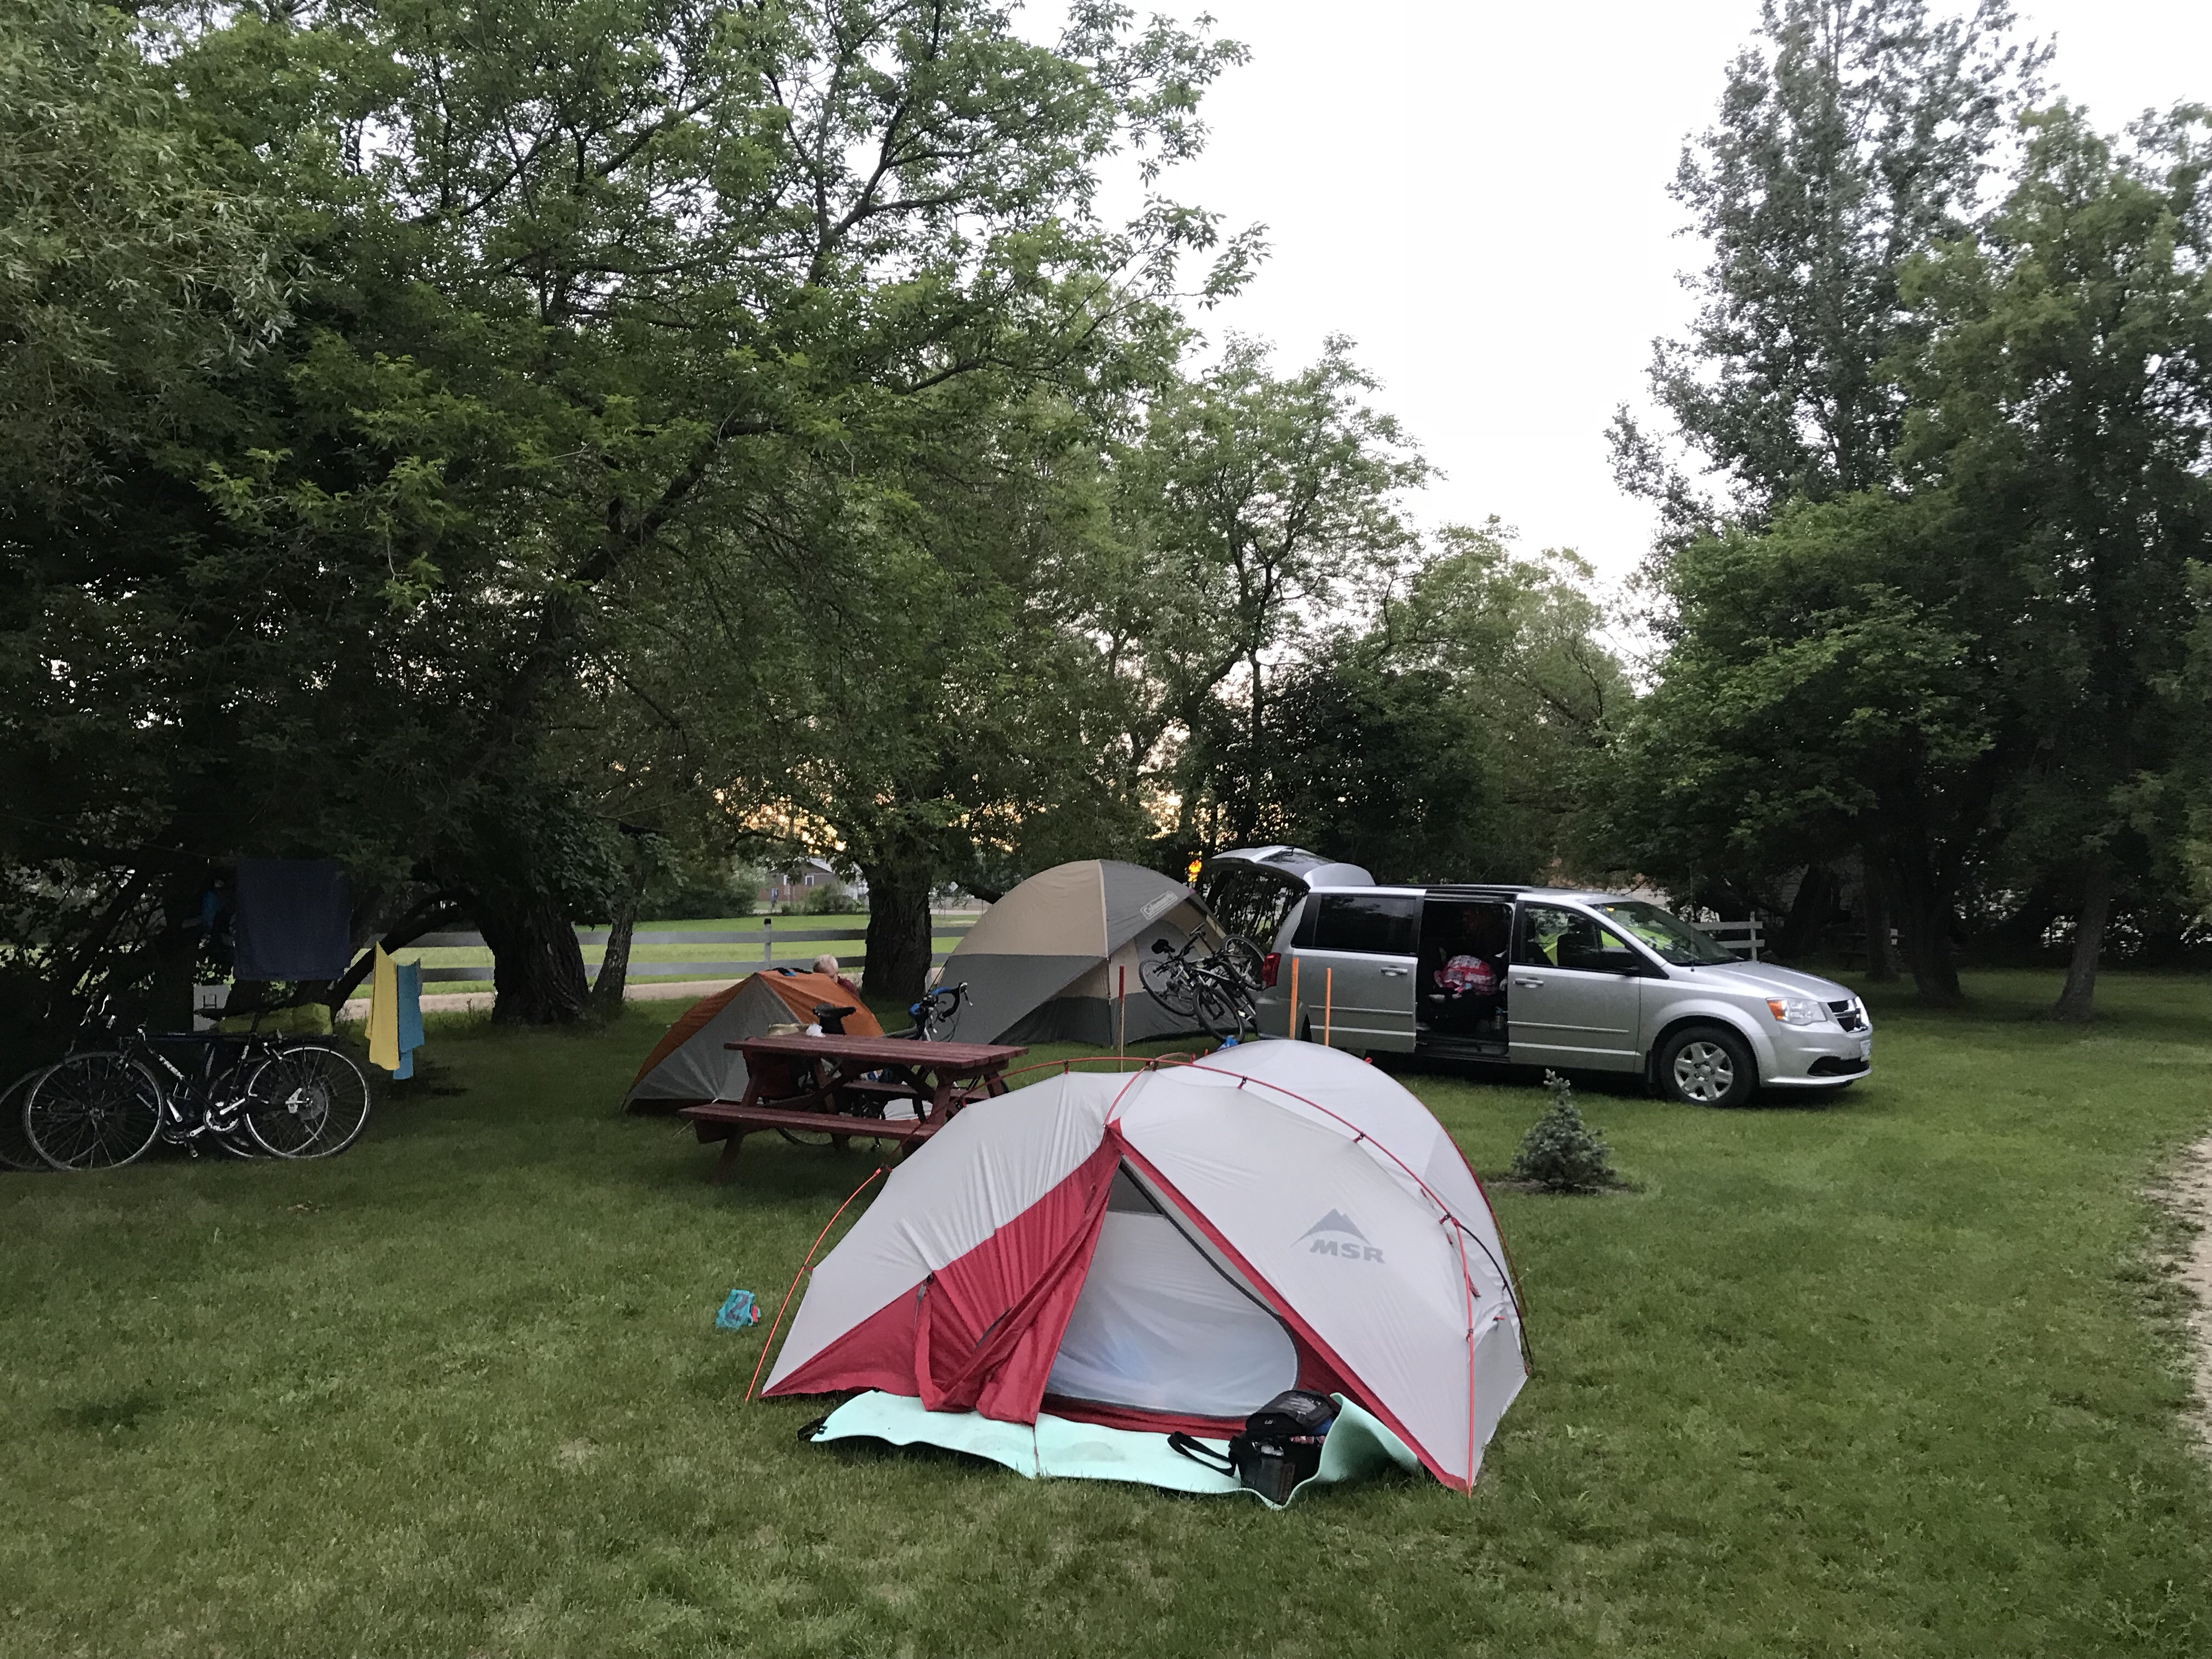 A backpacking tent in the foreground and a large van with bikes on the back and a giant tent beside it in the background